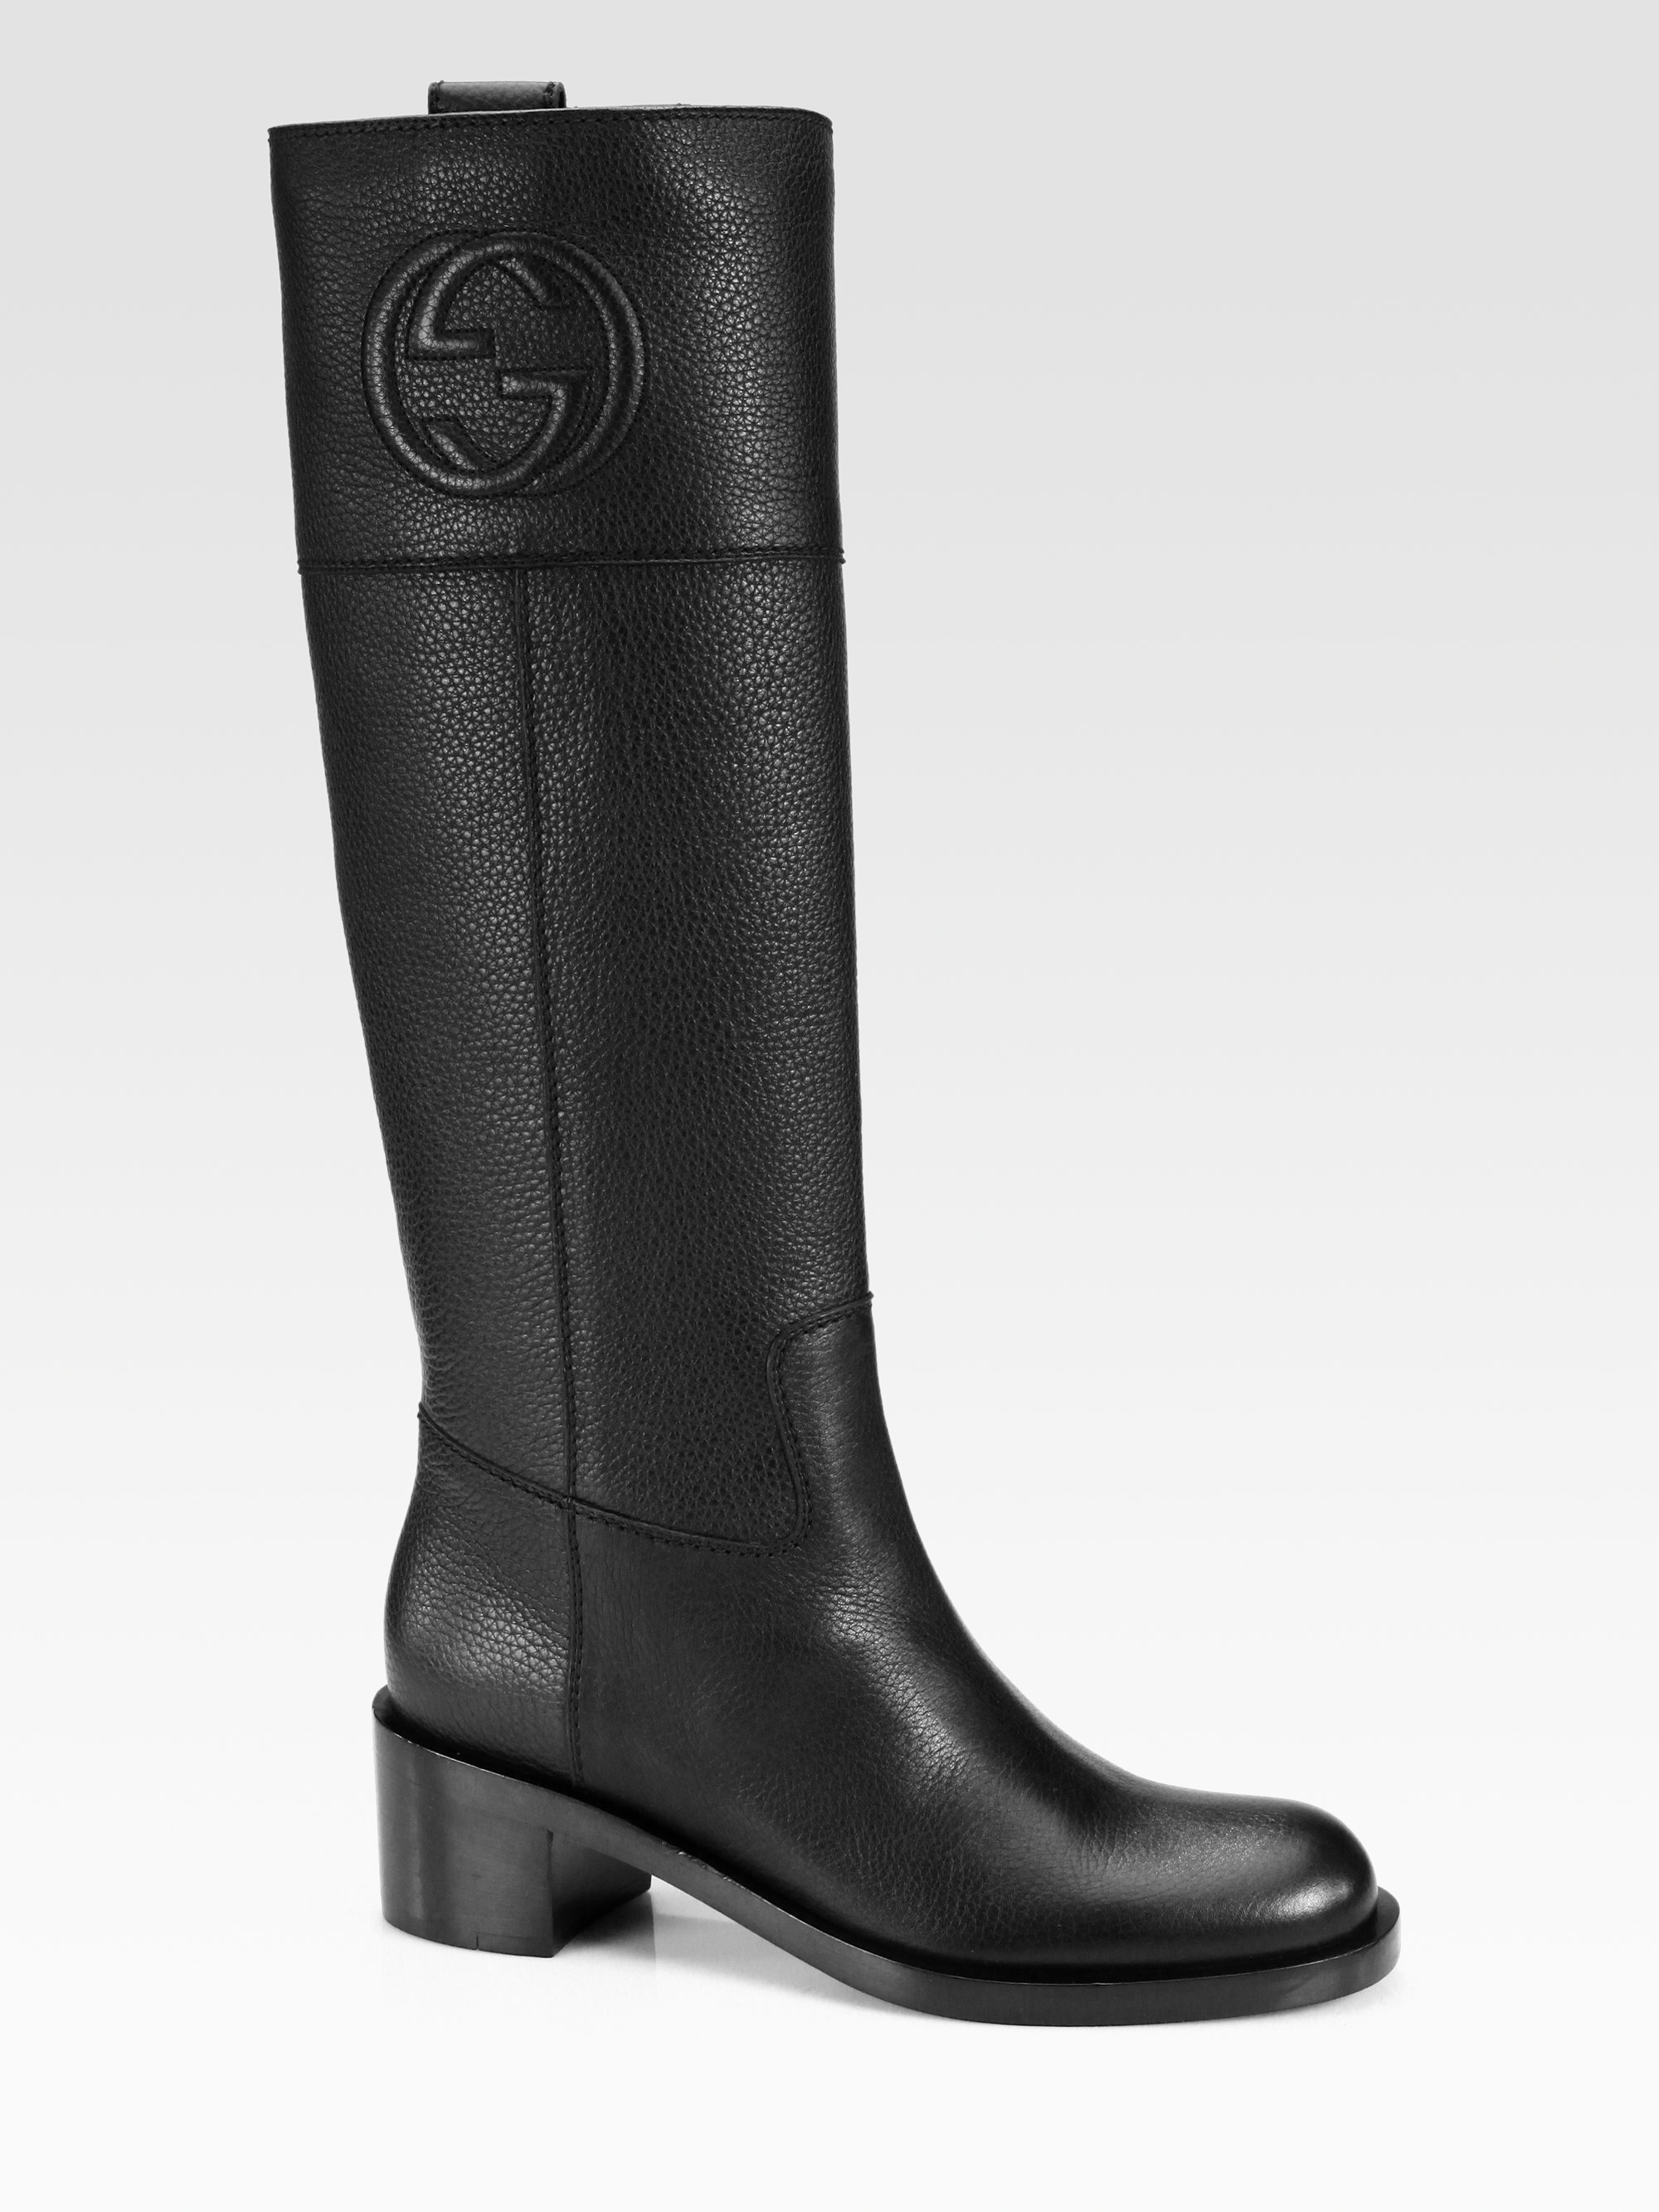 gucci soho leather boots in black lyst